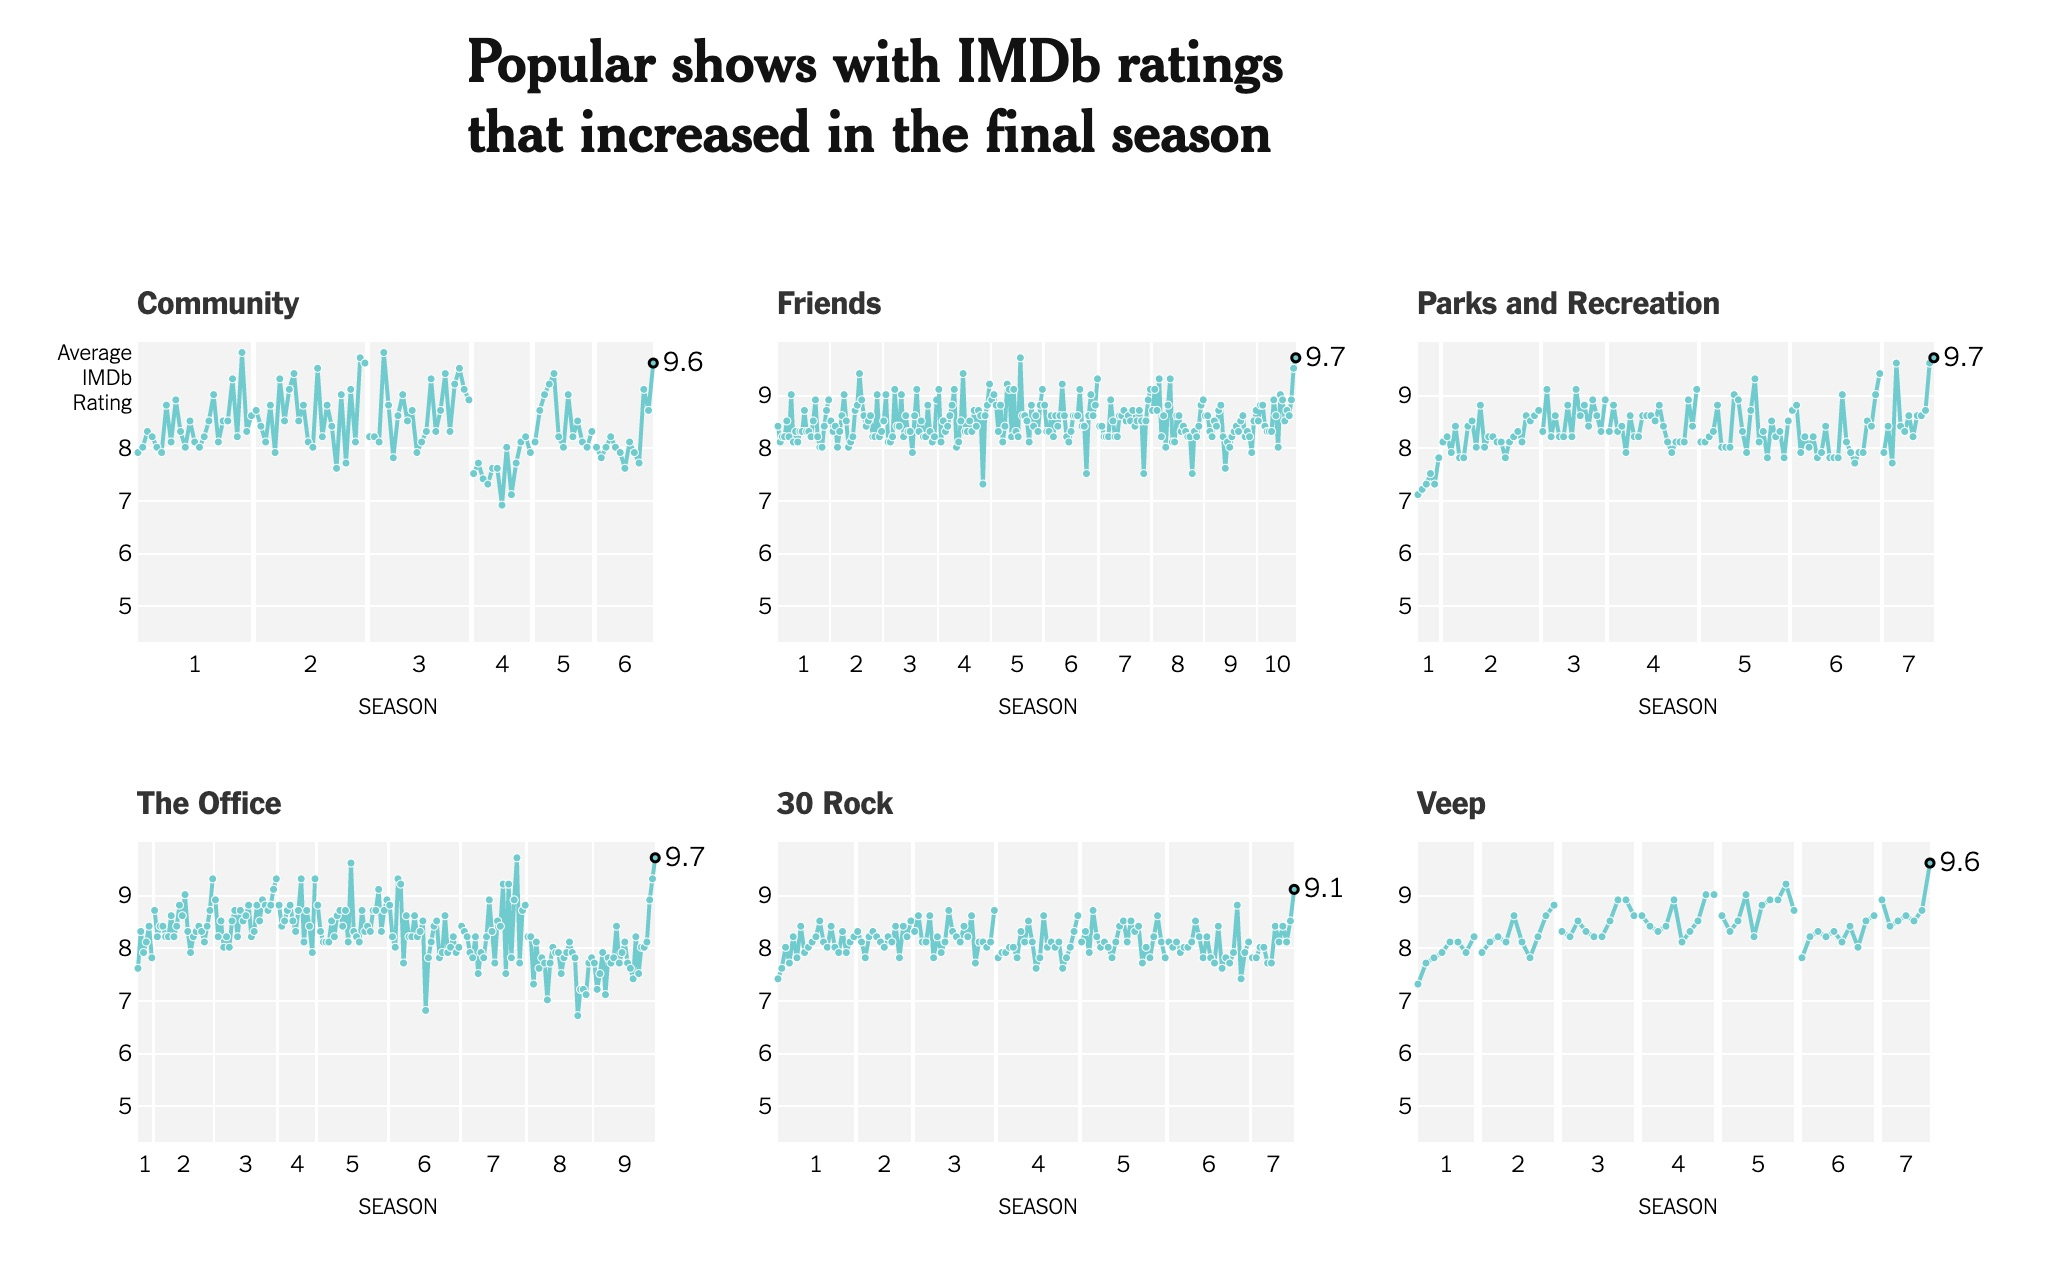 Popular shows with IMDb ratings that increased in the final season